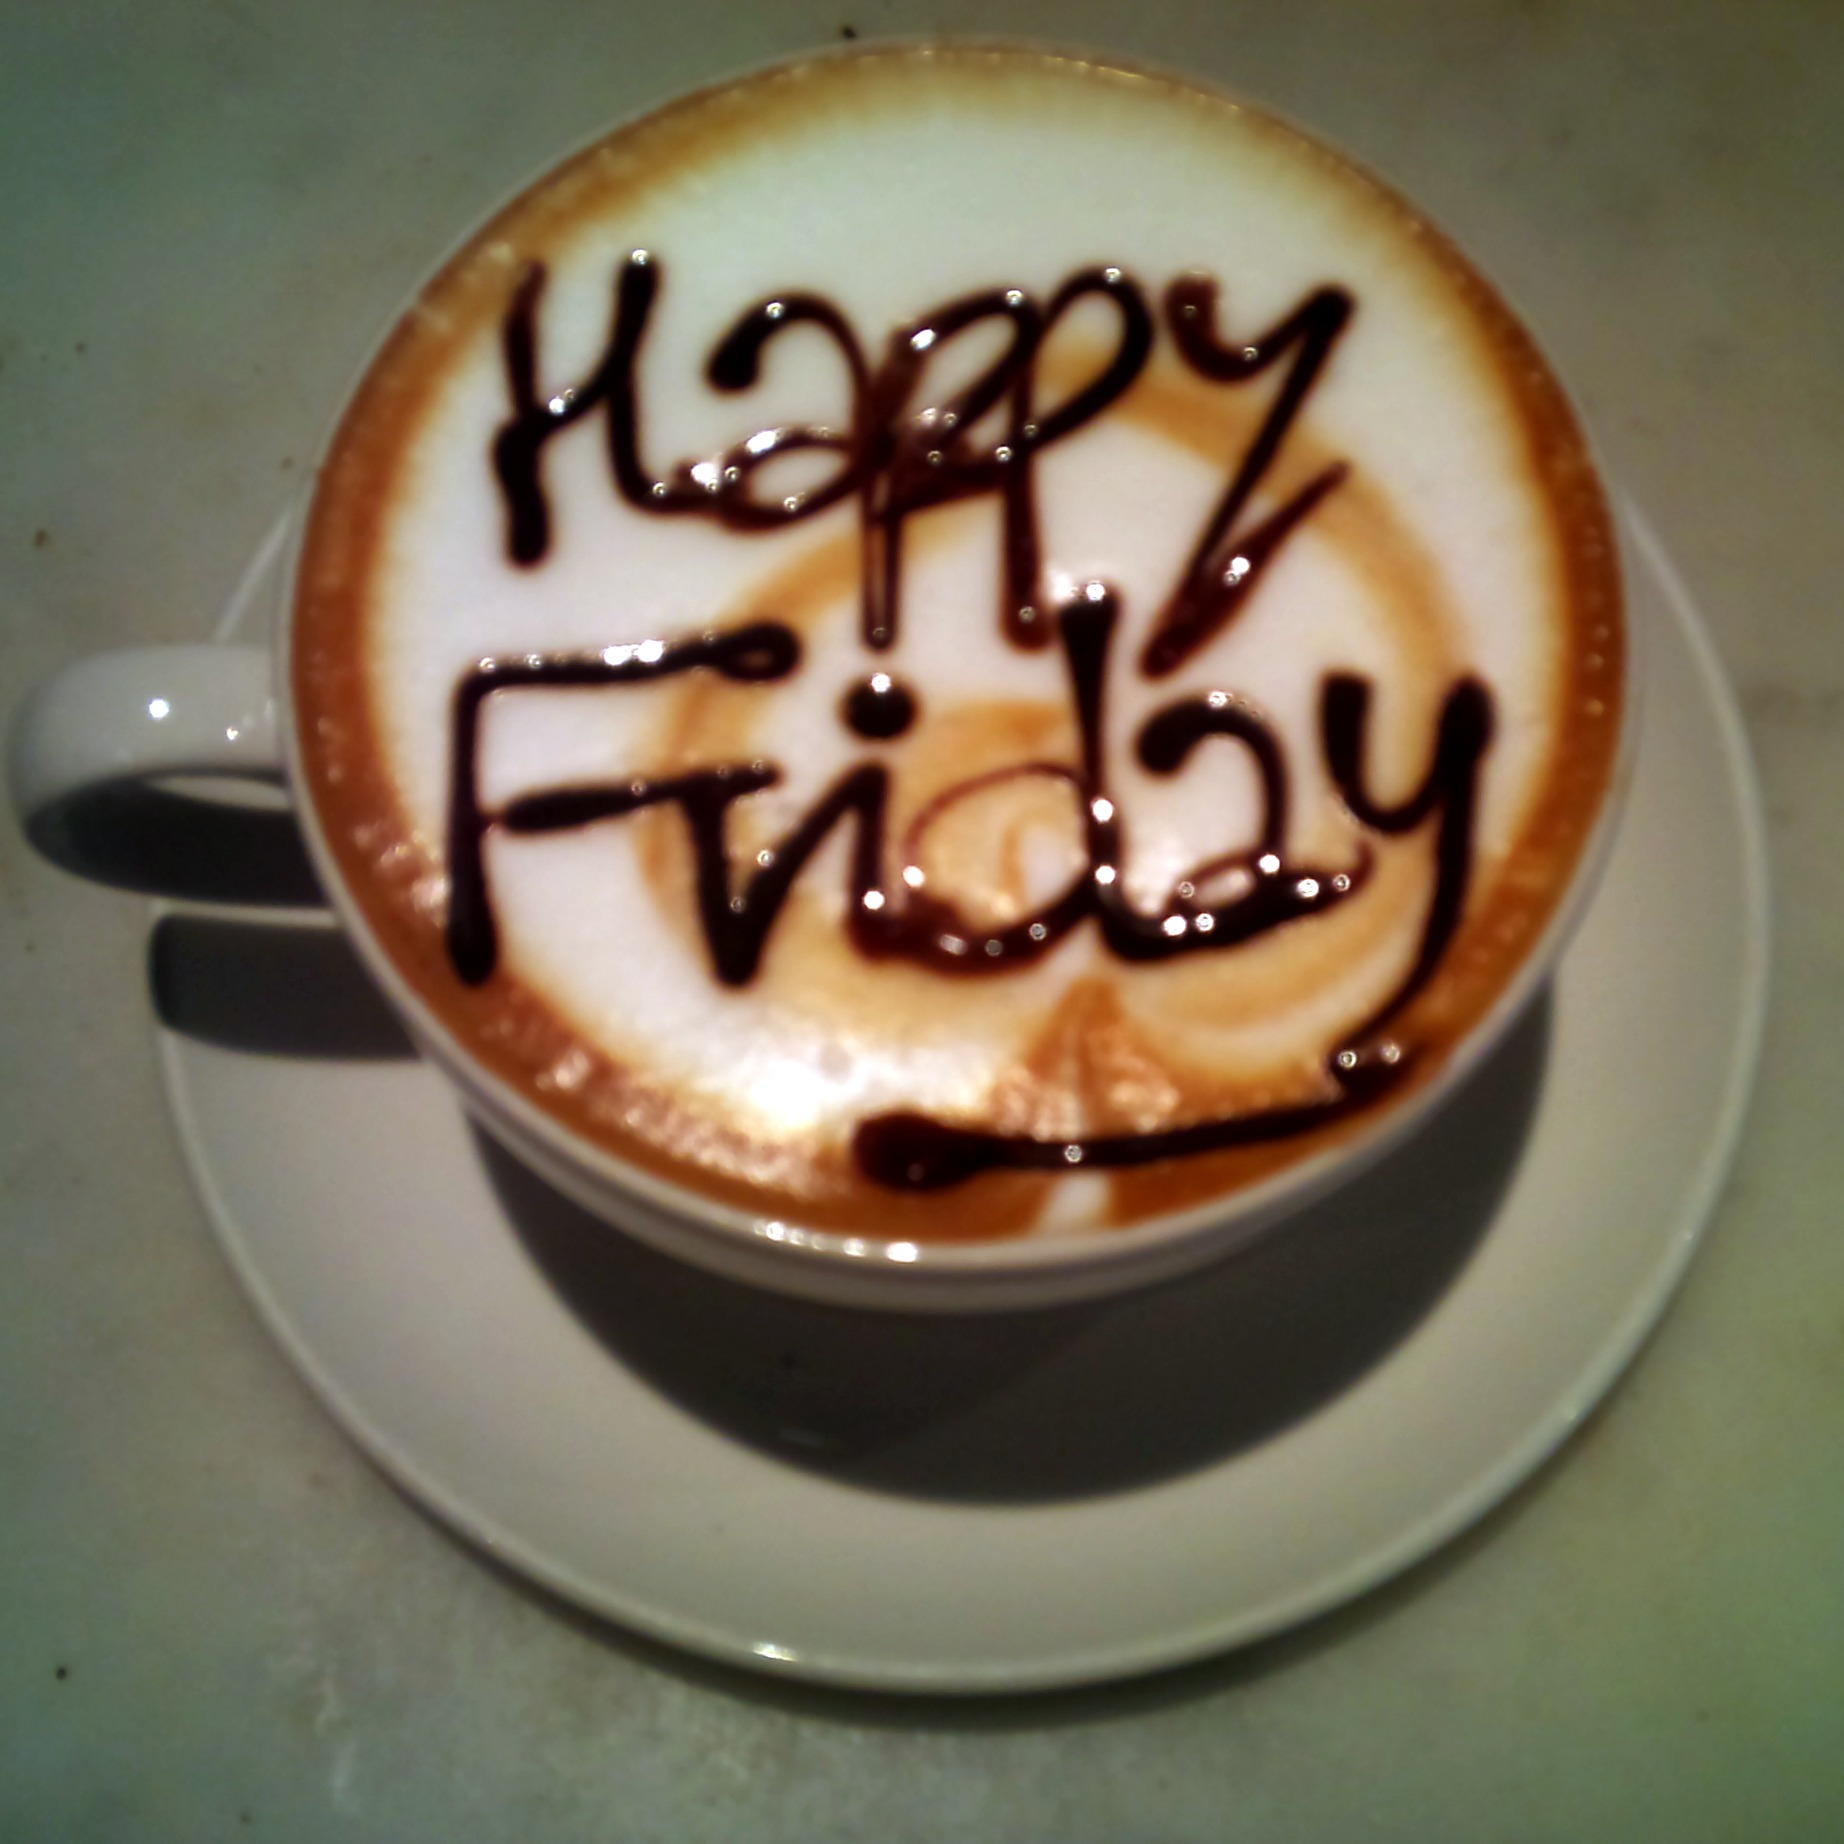 Coffee Latte Art Quotes 1000 43 Images About It 39s Friday On Pinterest Happy